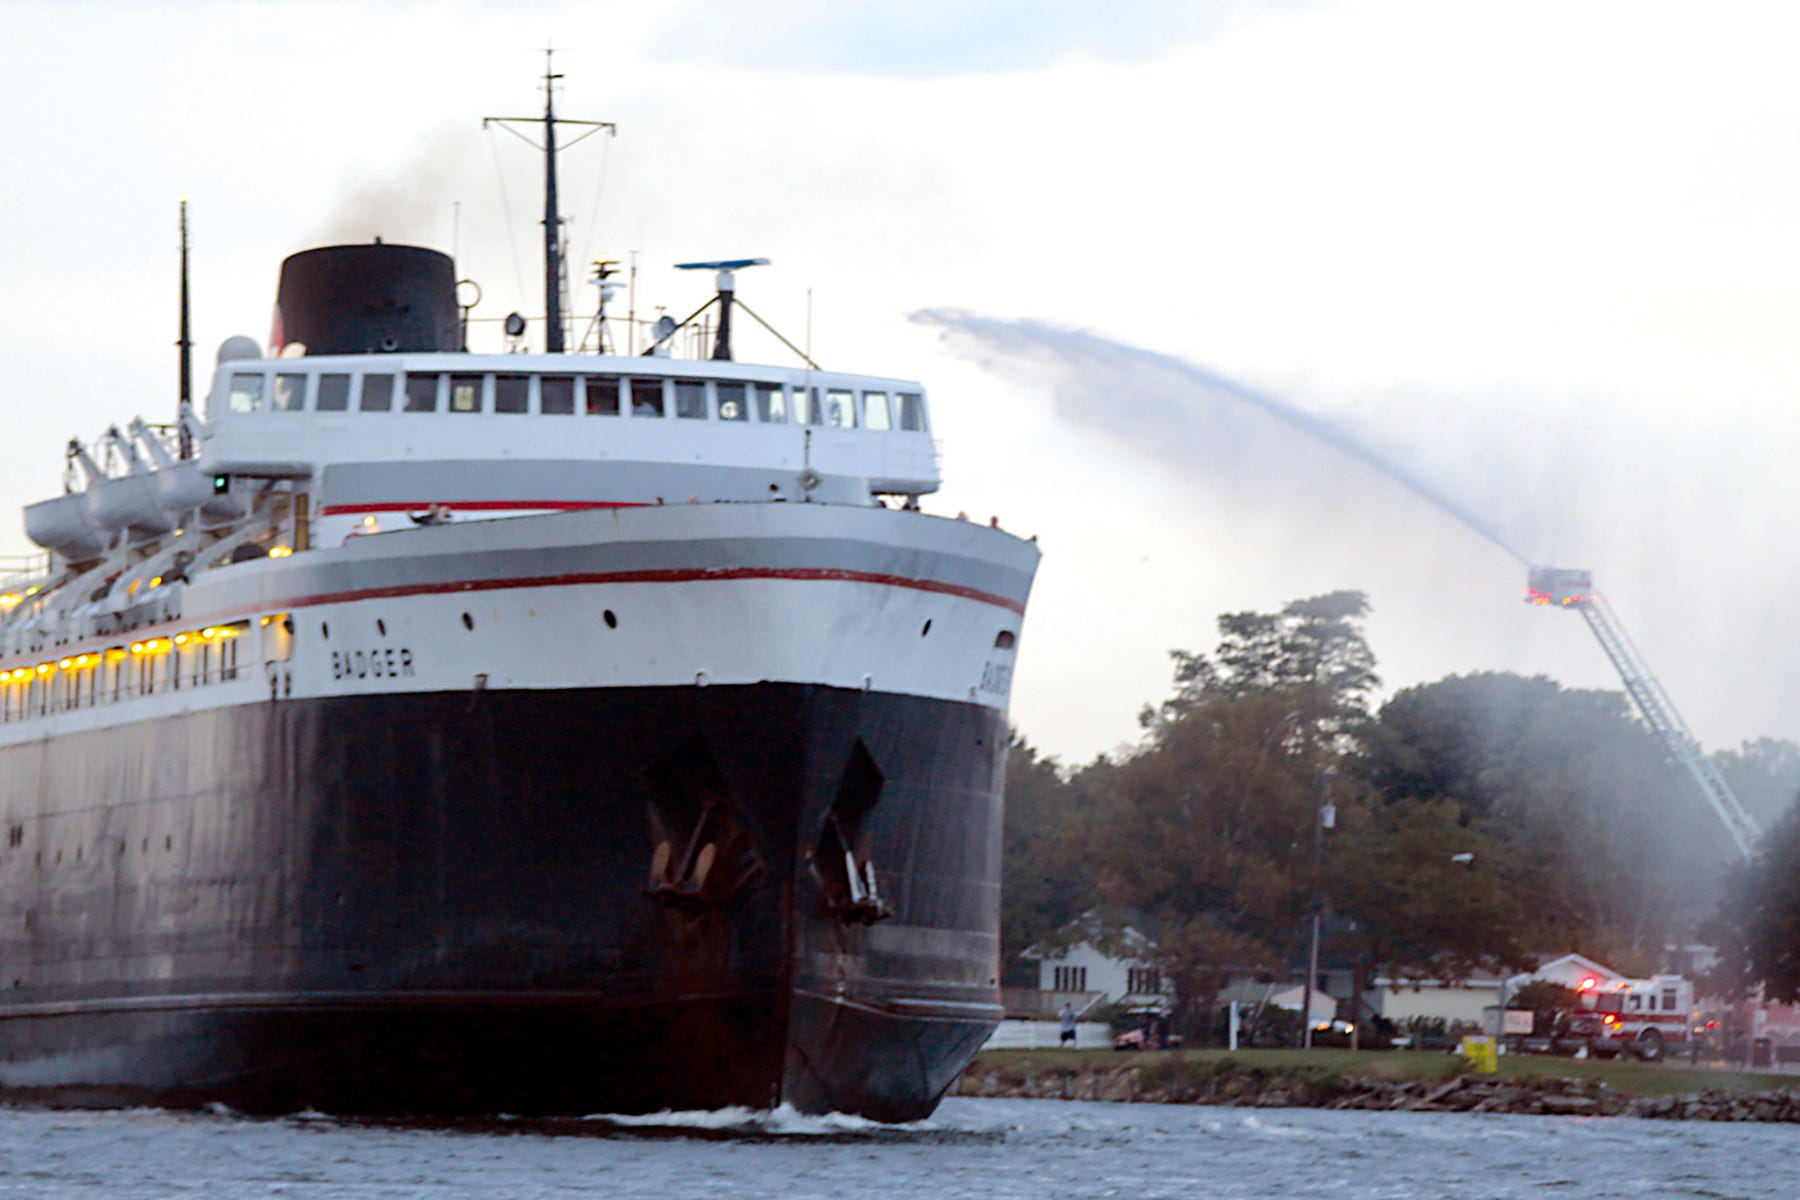 New owner says first year operating Lake Michigan Carferry was 'smooth sailing'